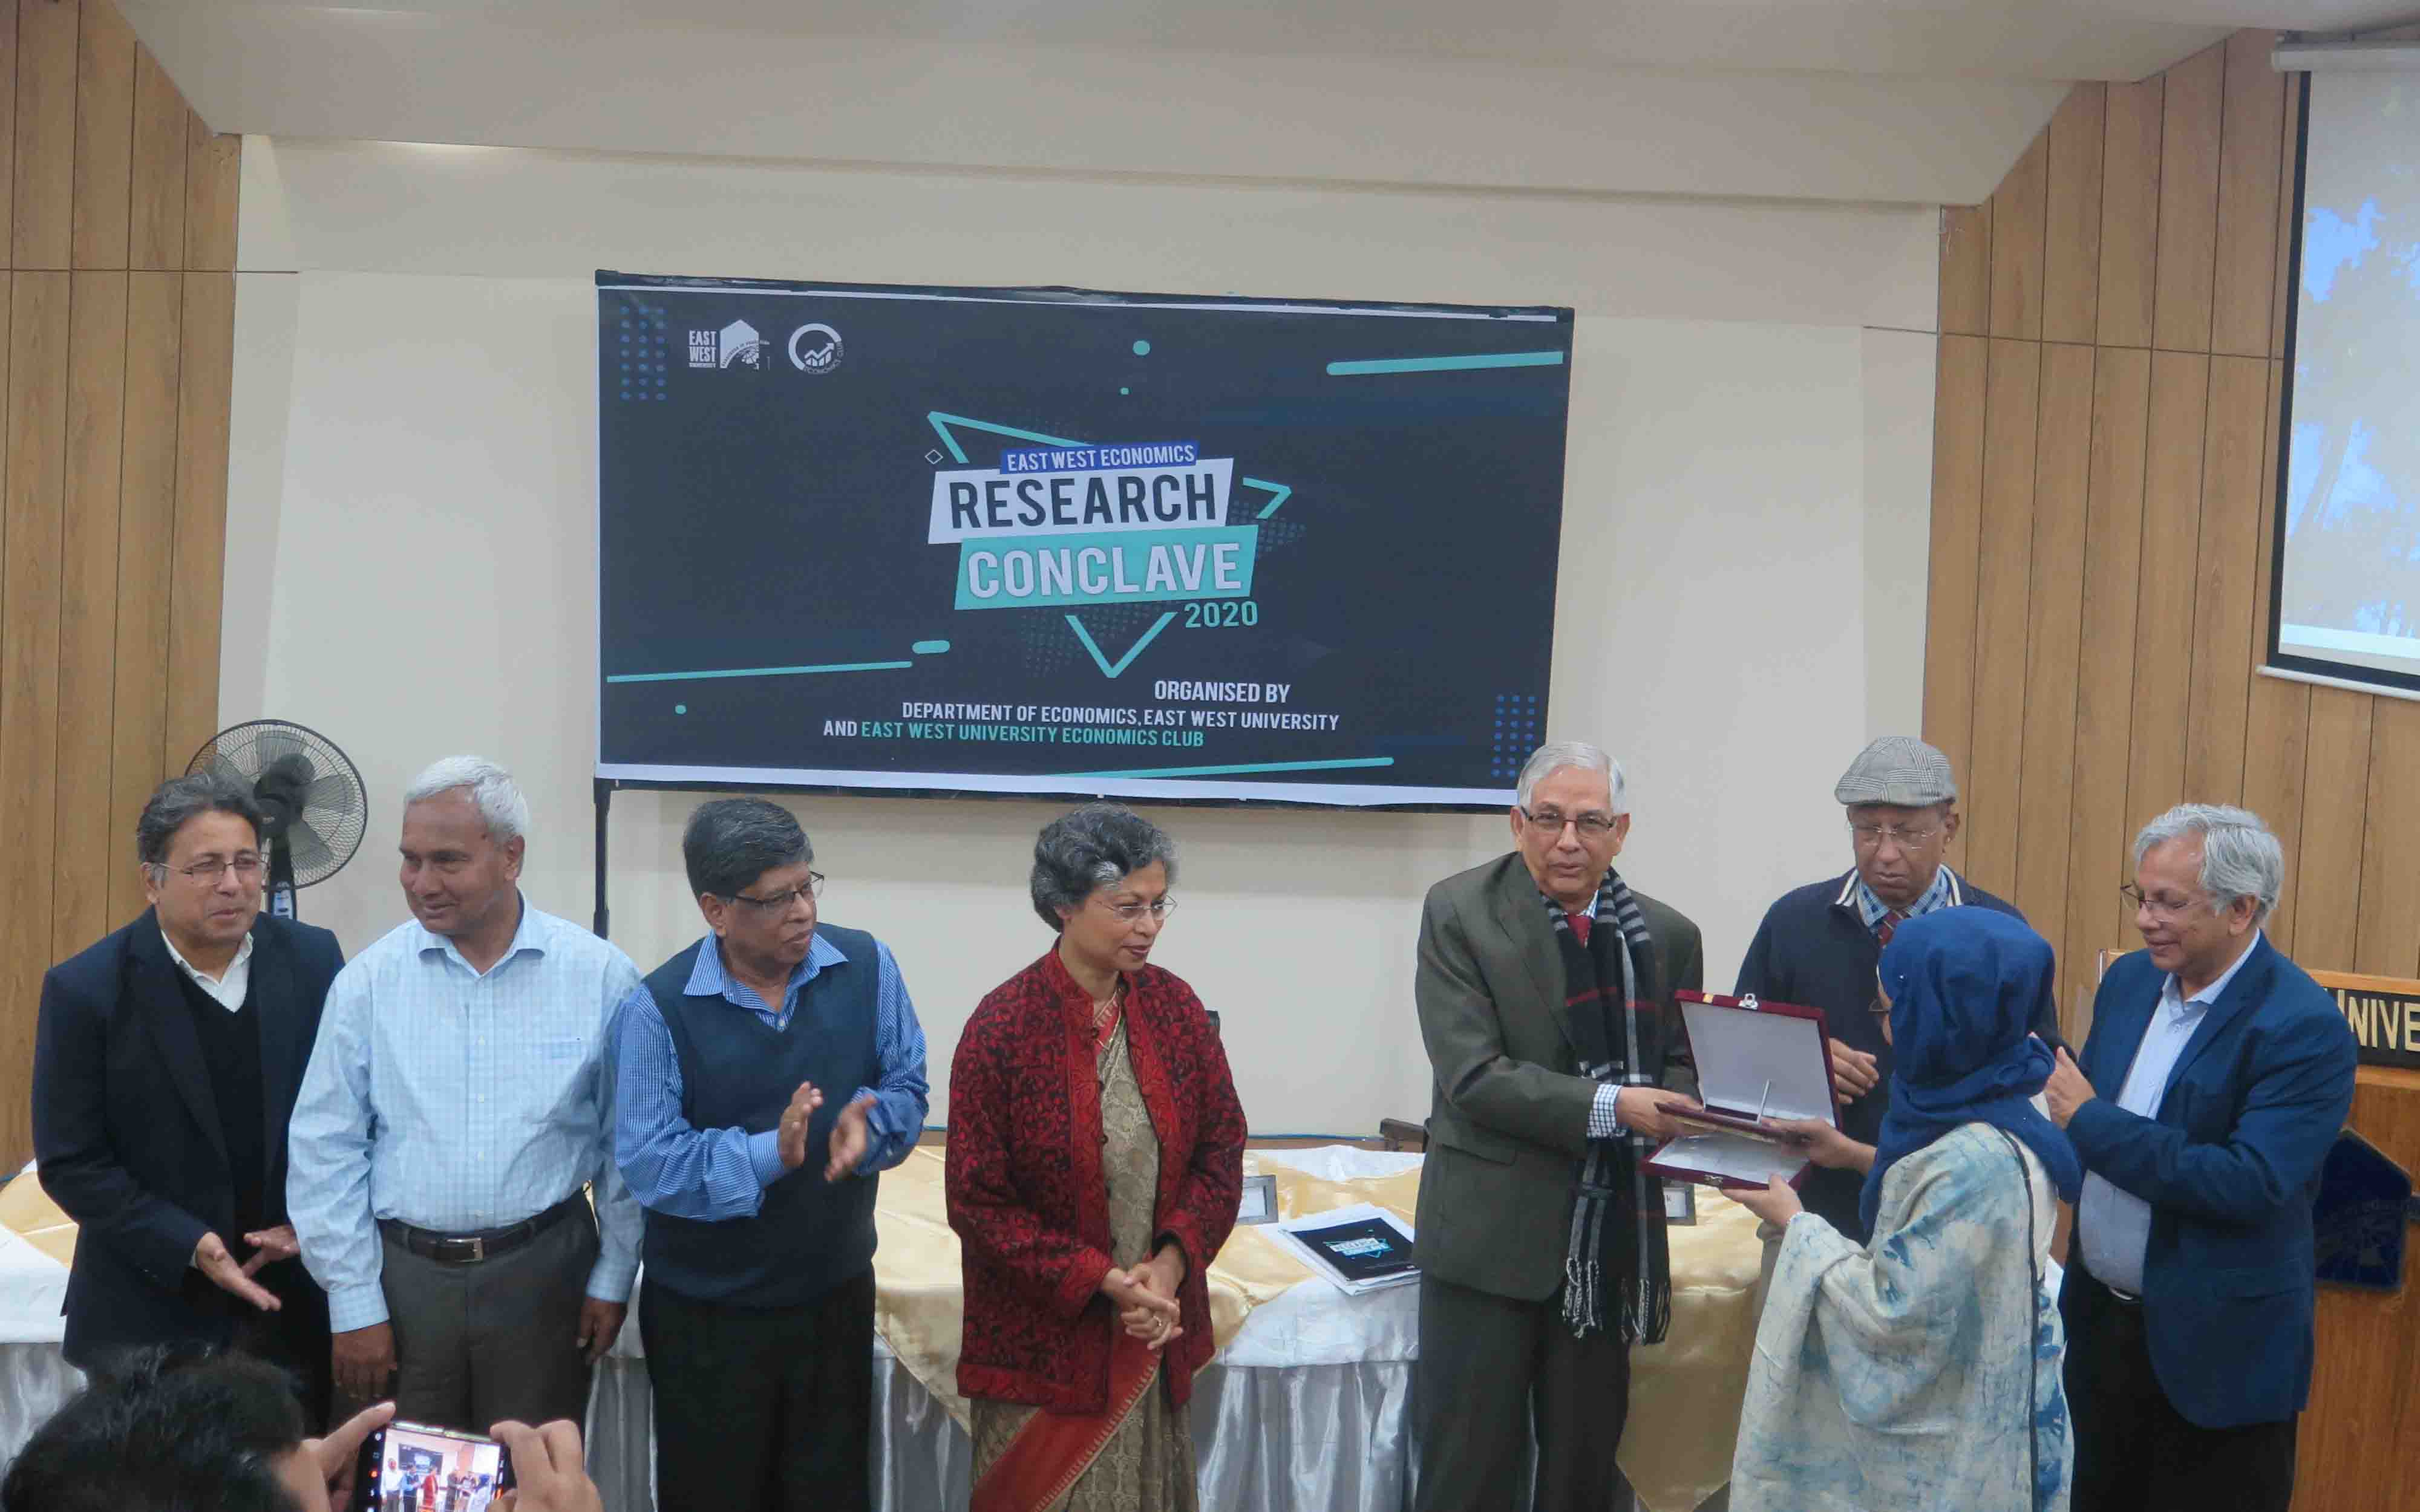 EWU Arranges a Research Conference